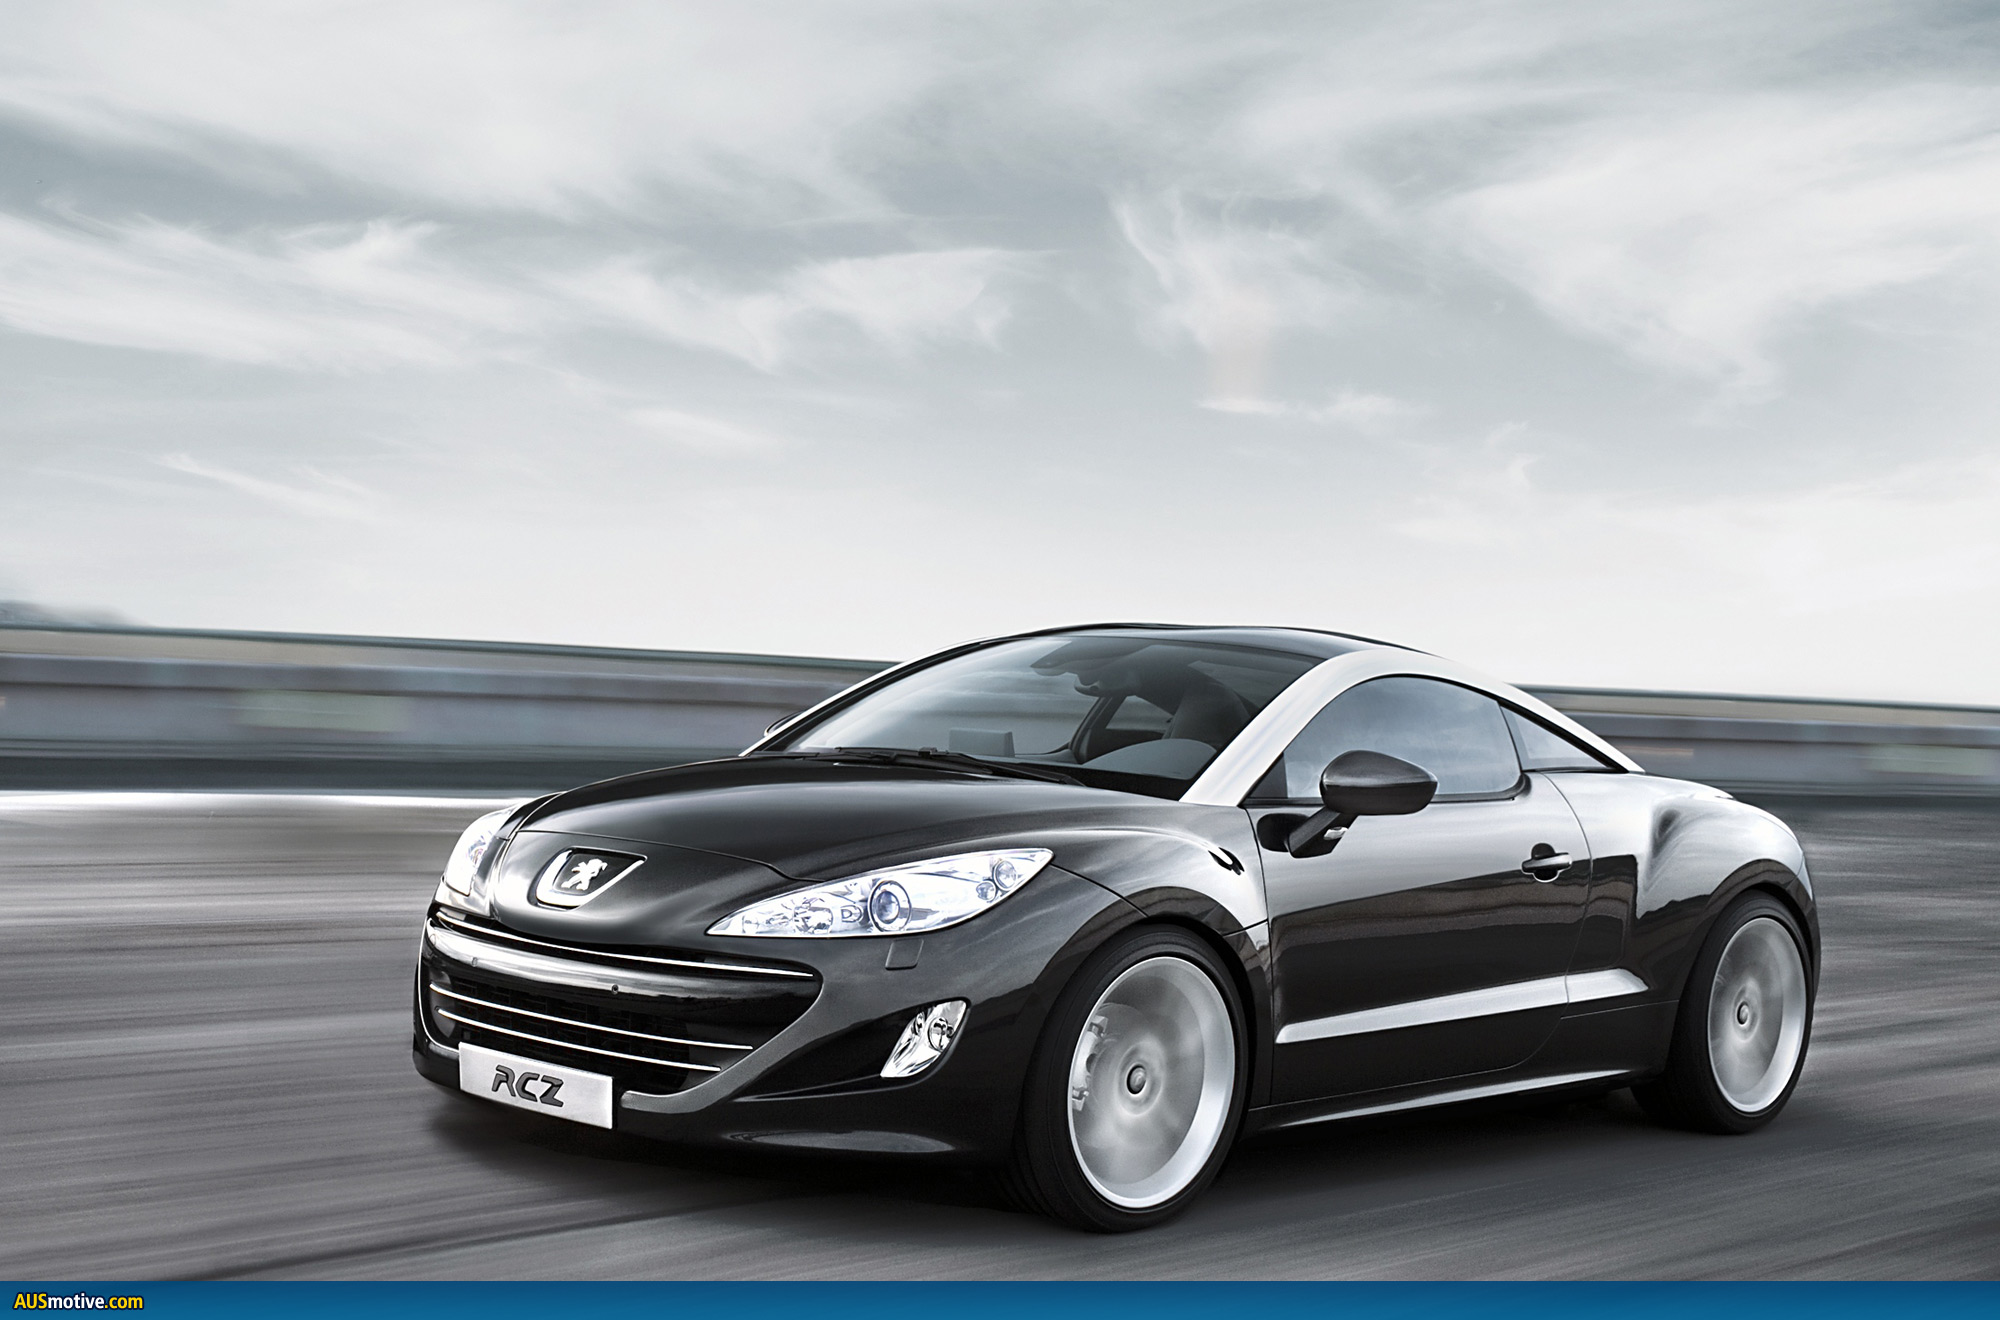 peugeot rcz it s like an audi tt but french. Black Bedroom Furniture Sets. Home Design Ideas